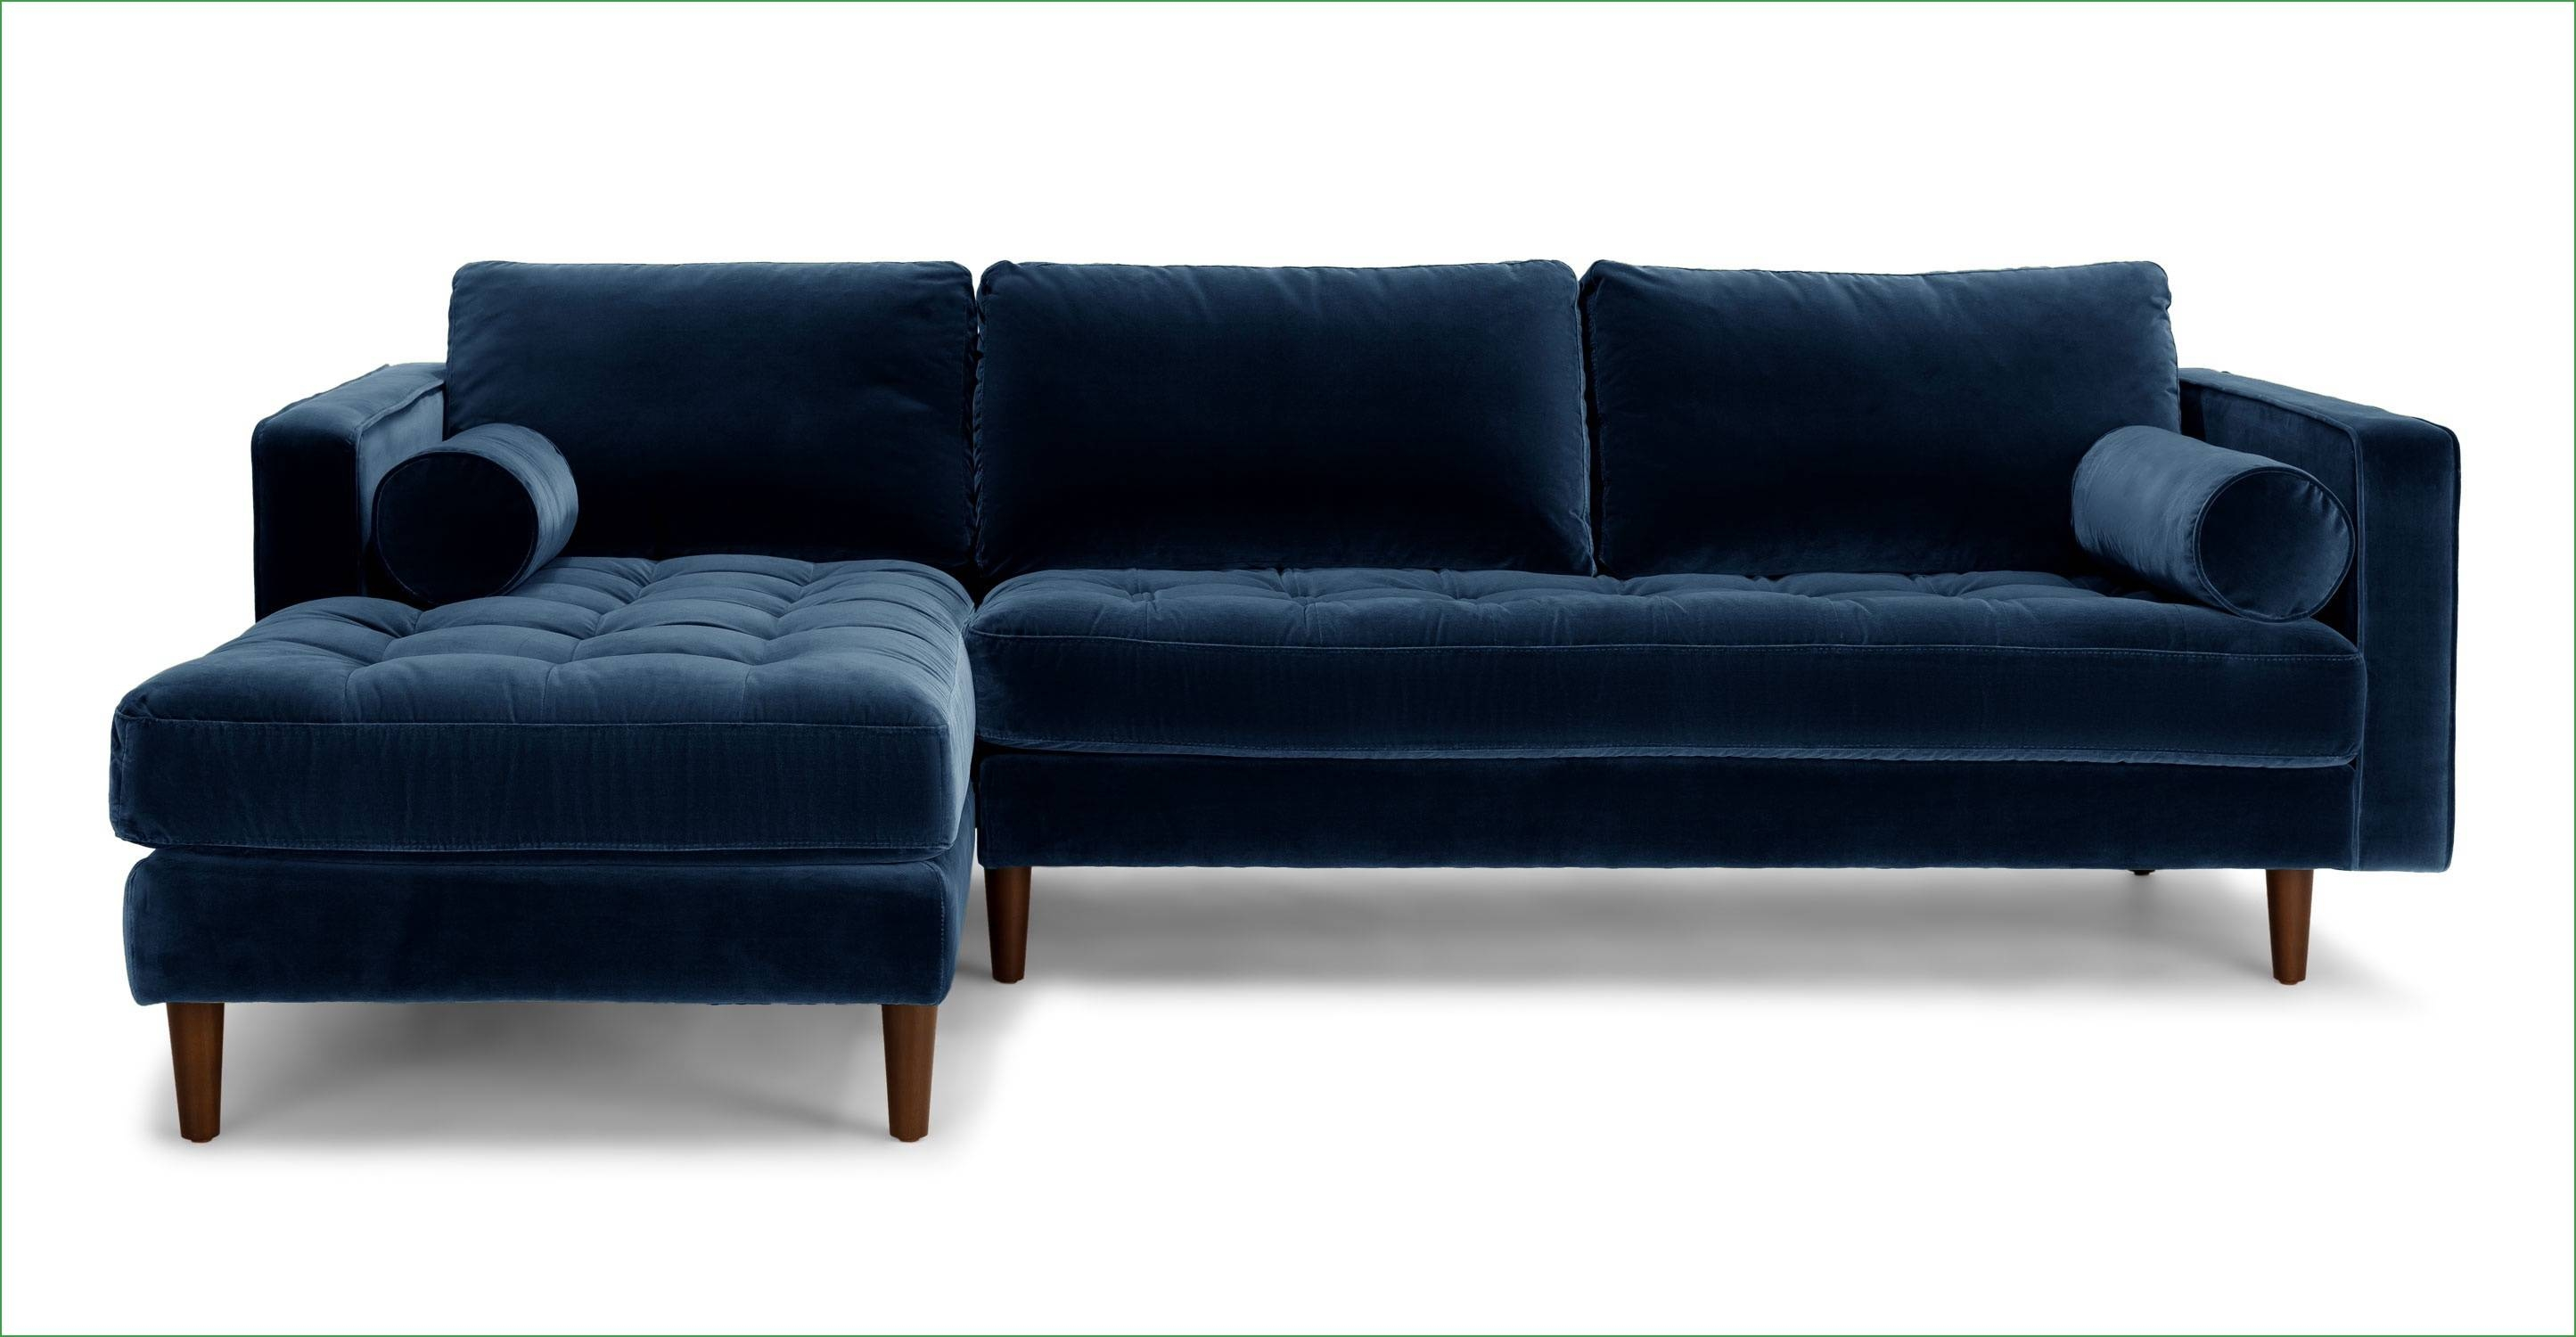 Sofas Center : Sven Cascadia Blue Leftional Sofaionals Article throughout Tufted Sectional Sofa With Chaise (Image 26 of 30)